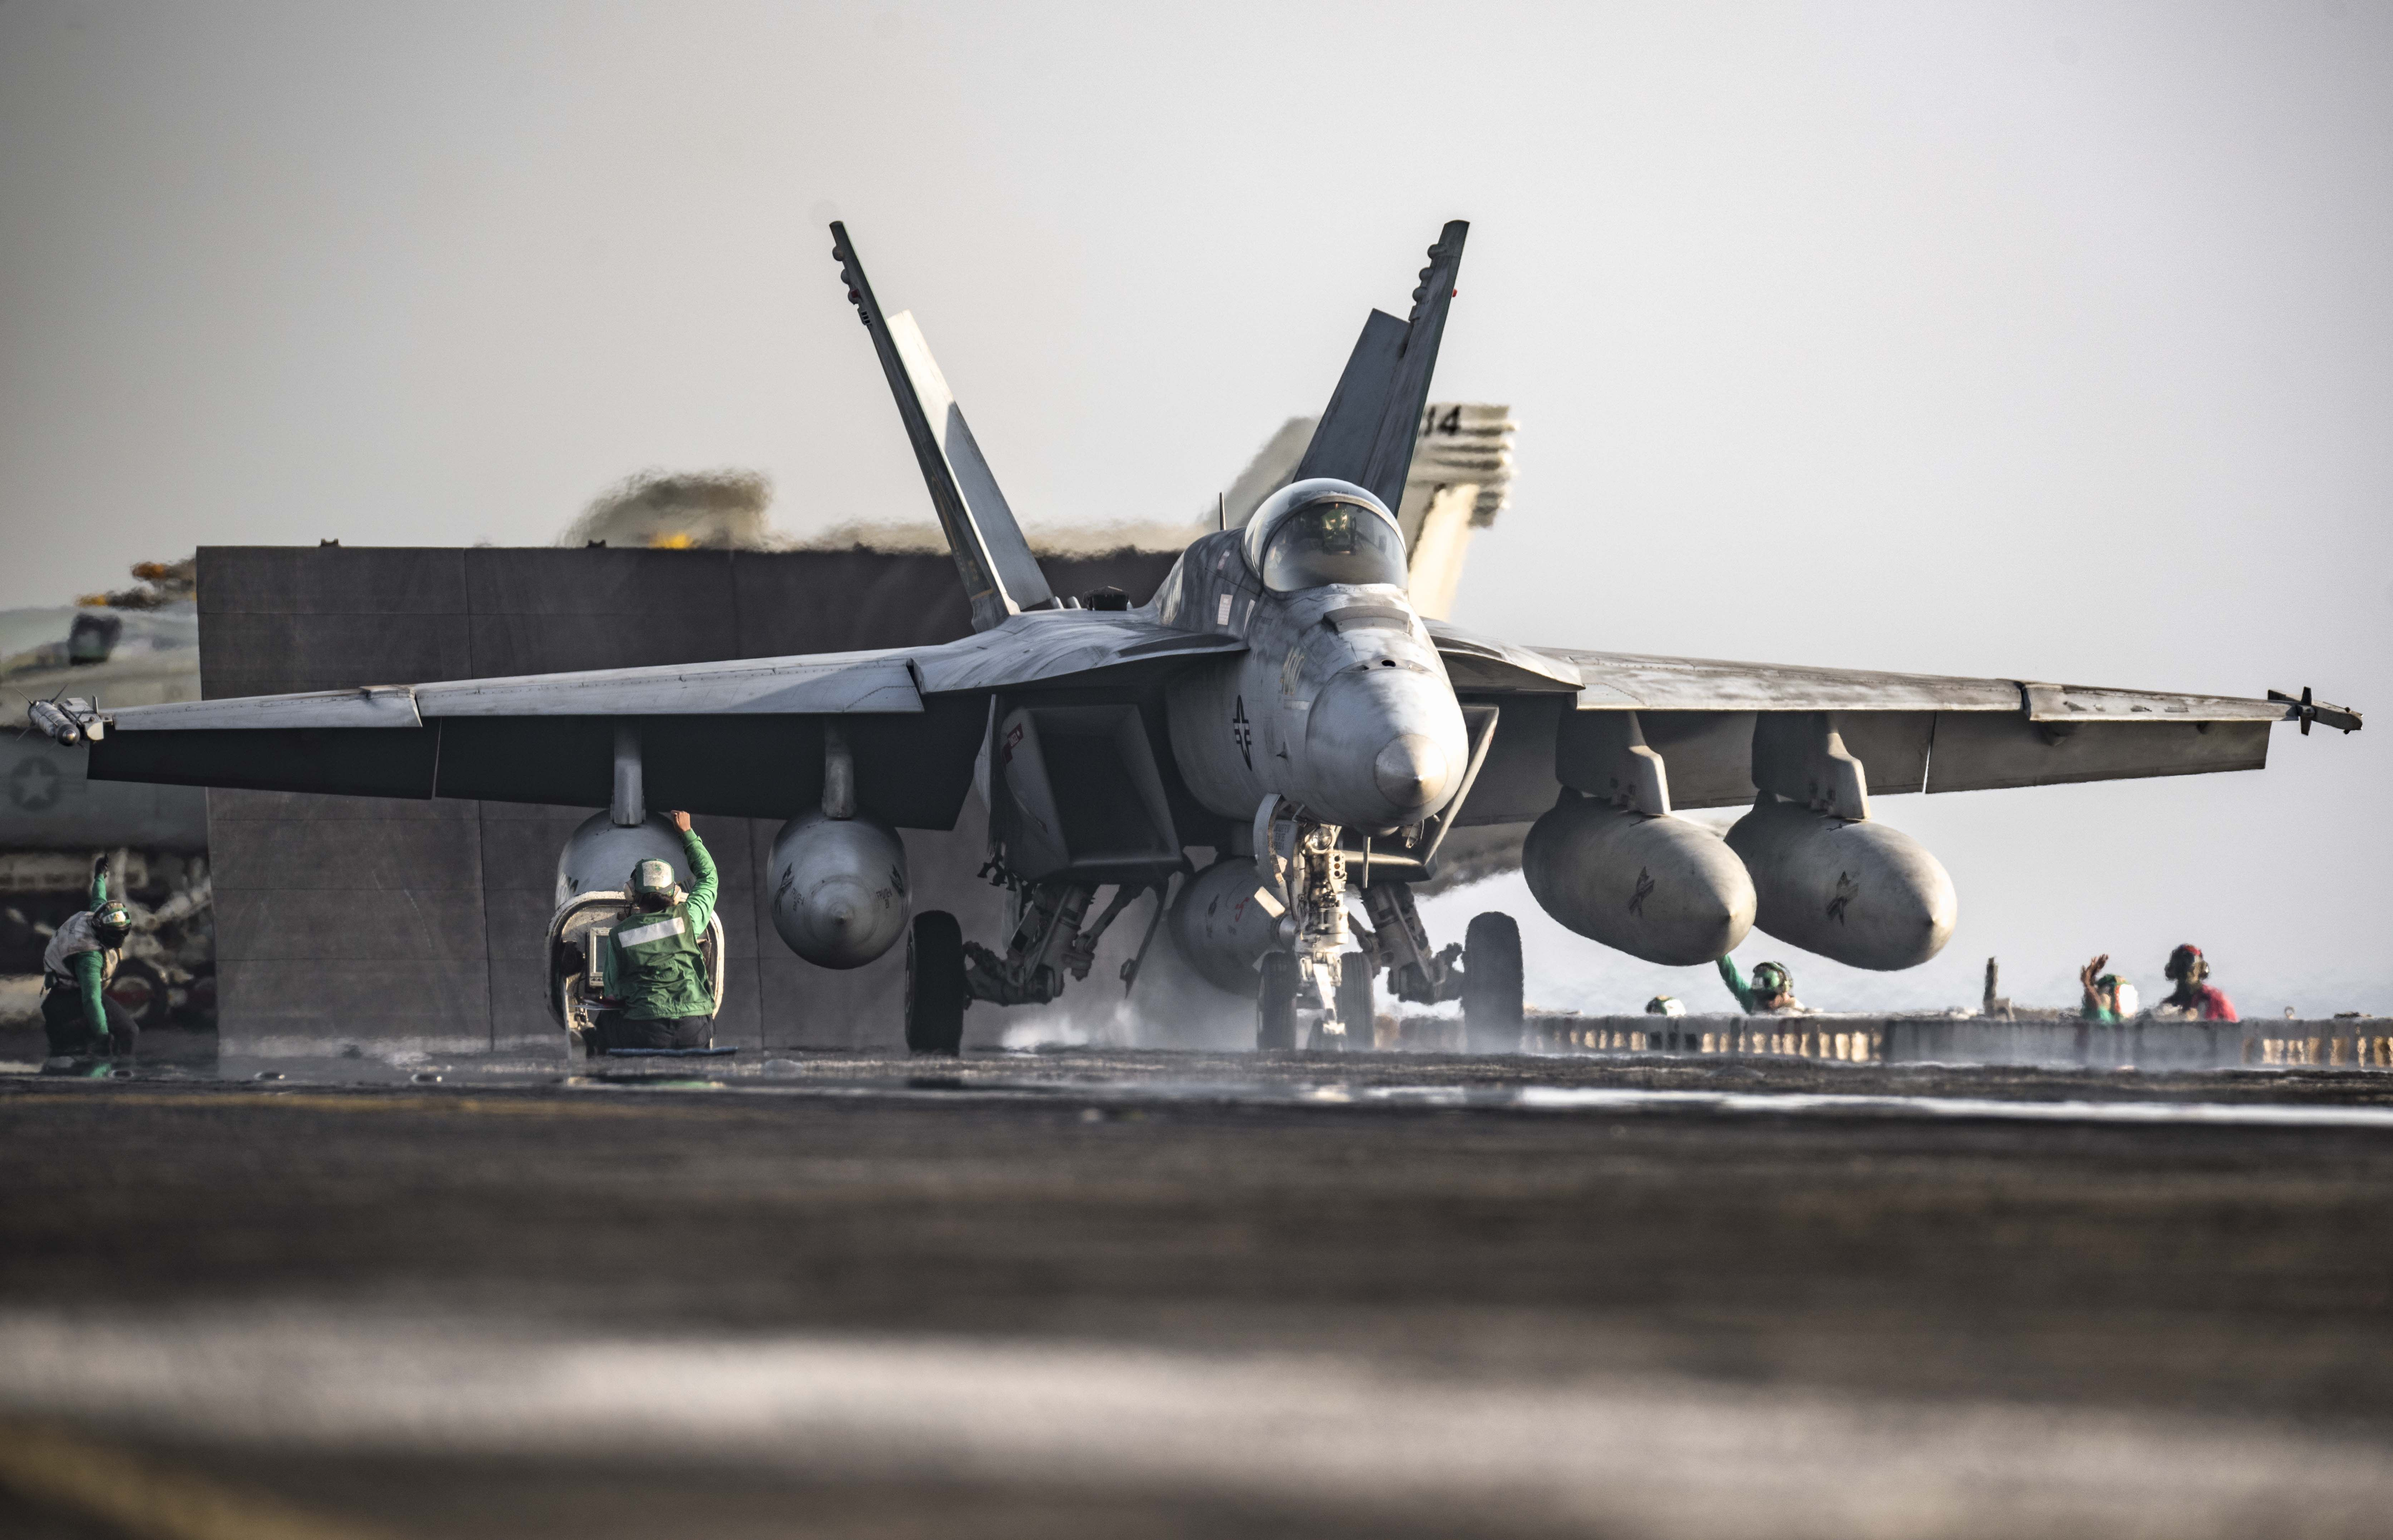 ARABIAN GULF (Aug. 8, 2016) An F/A-18E Super Hornet assigned to the Gunslingers of Strike Fighter Squadron (VFA) 105 launches from the flight deck of the aircraft carrier USS Dwight D. Eisenhower (CVN 69) (Ike). Ike and its Carrier Strike Group are deployed in support of Operation Inherent Resolve, maritime security operations and theater security cooperation efforts in the U.S. 5th Fleet area of operations. (U.S. Navy photo by Mass Communication Specialist 3rd Class J. Alexander Delgado)